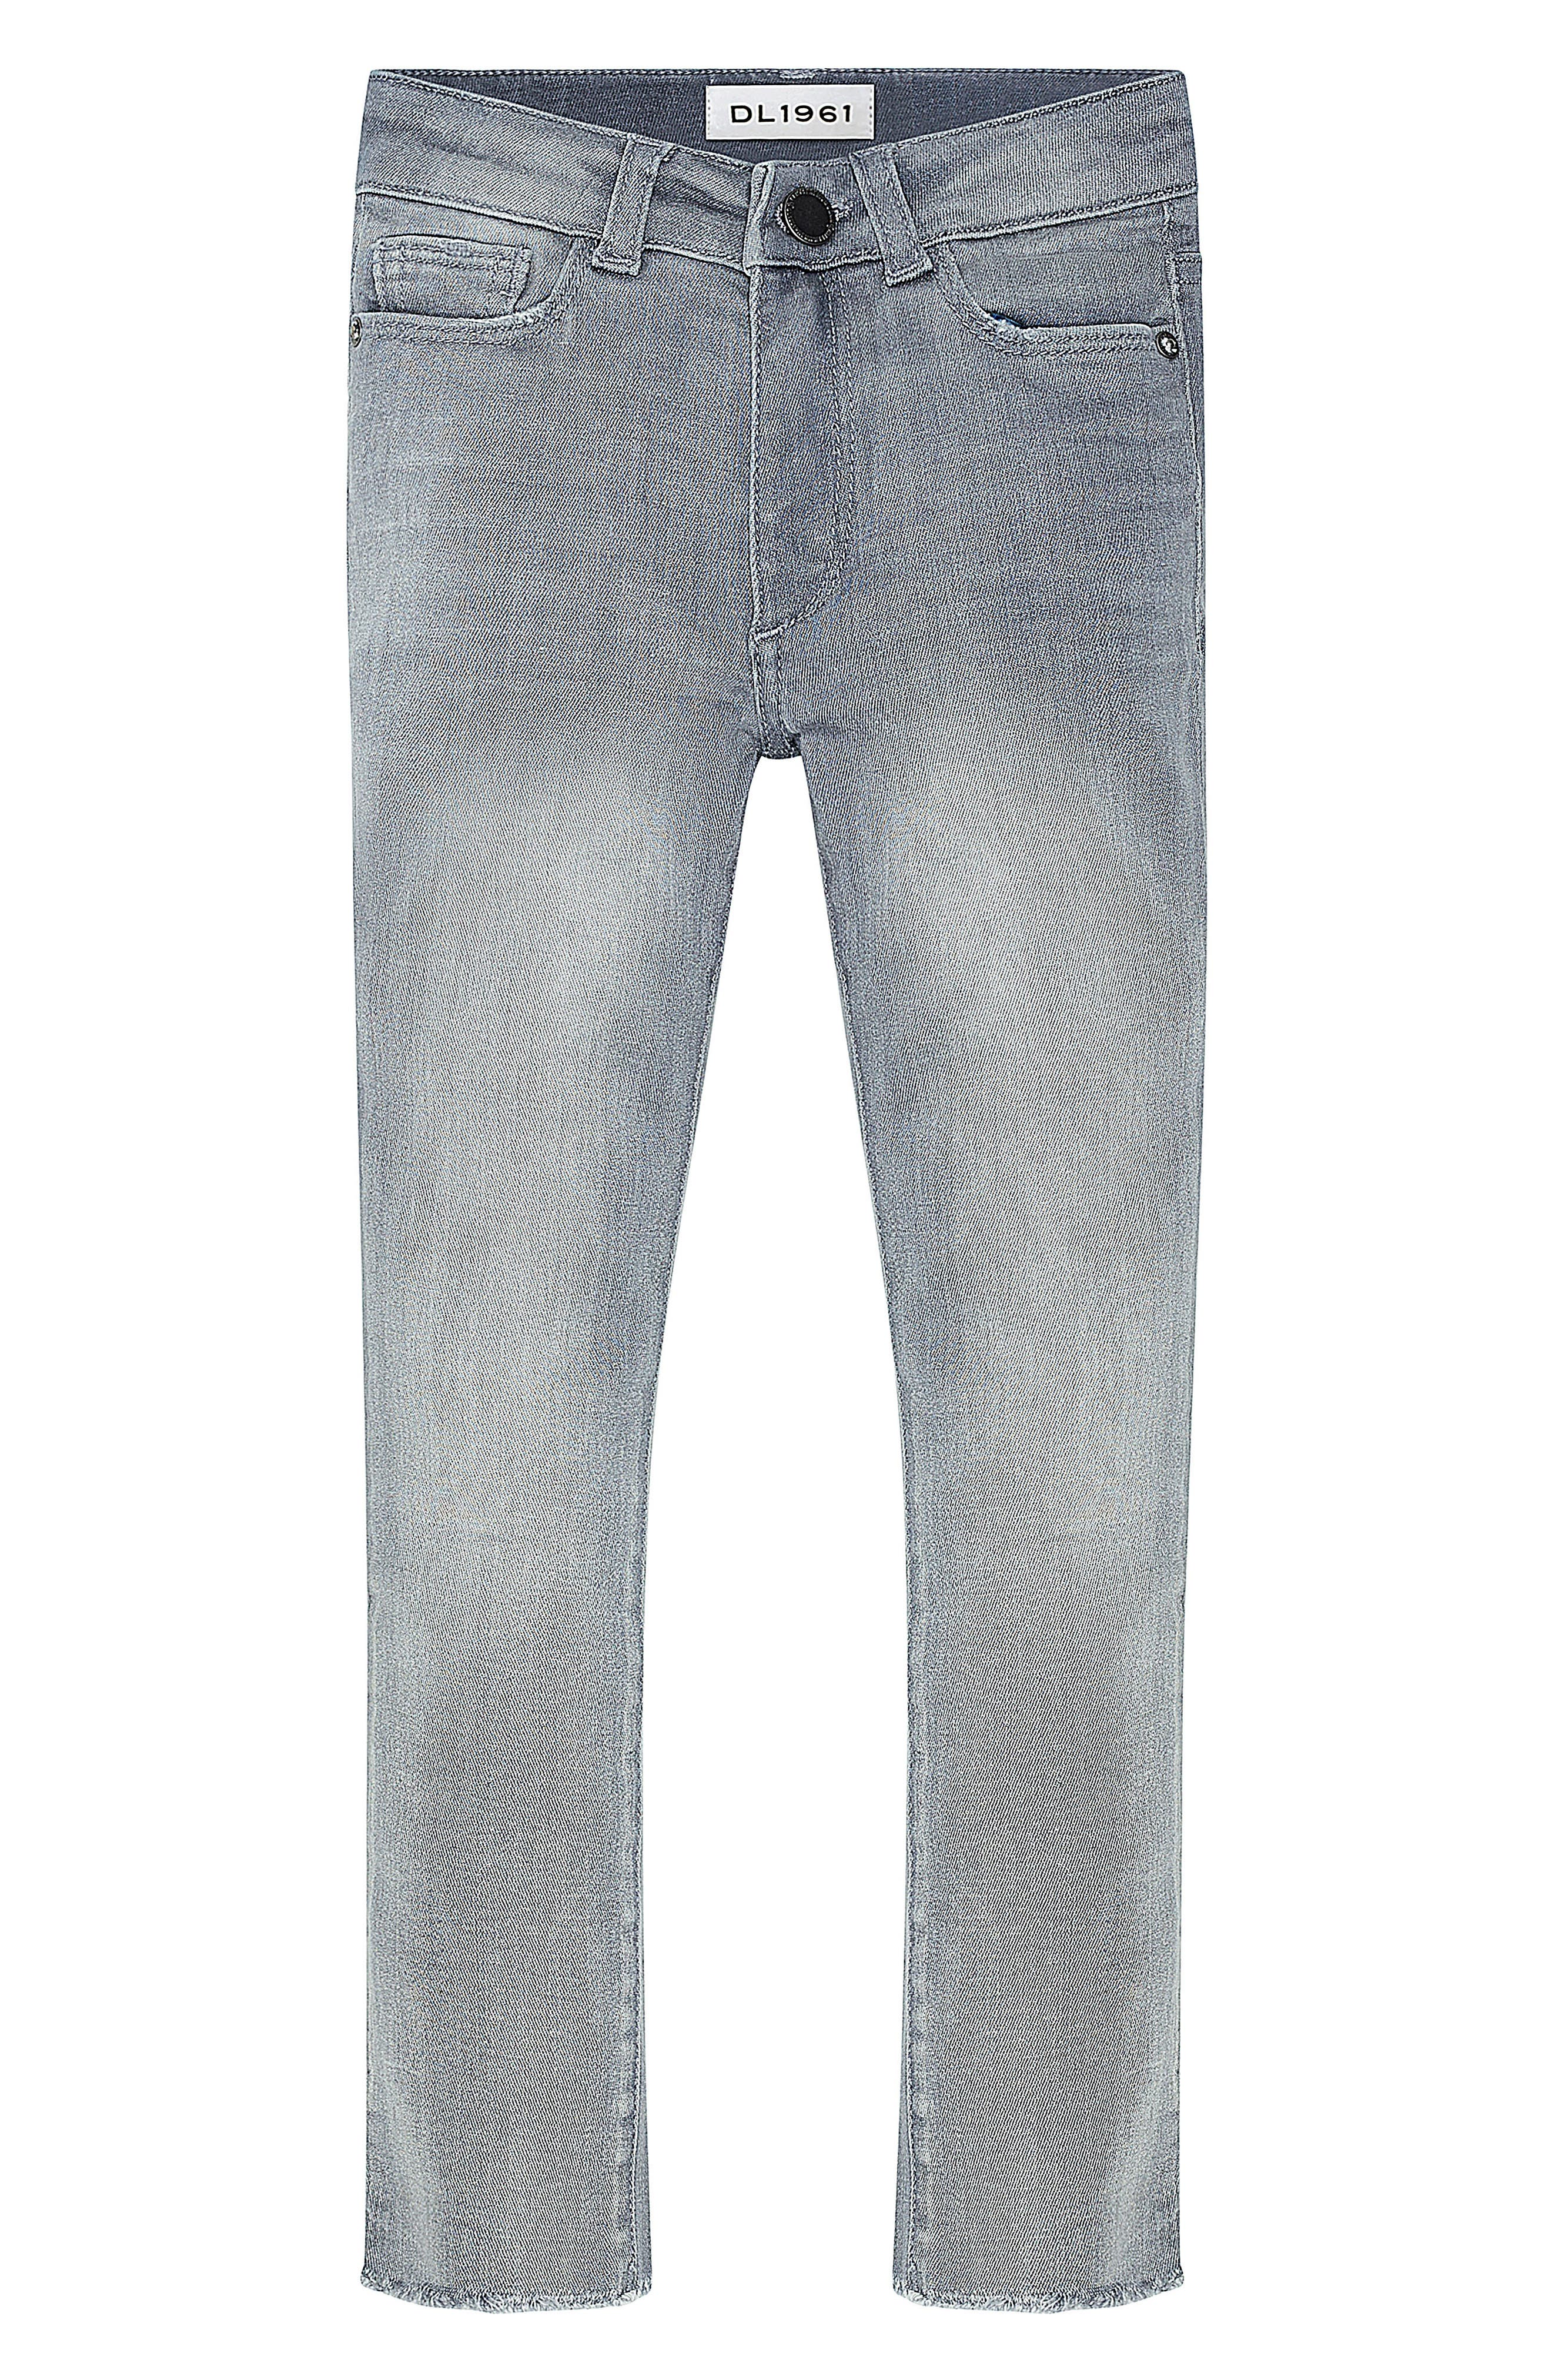 Skinny Jeans,                         Main,                         color, Howl